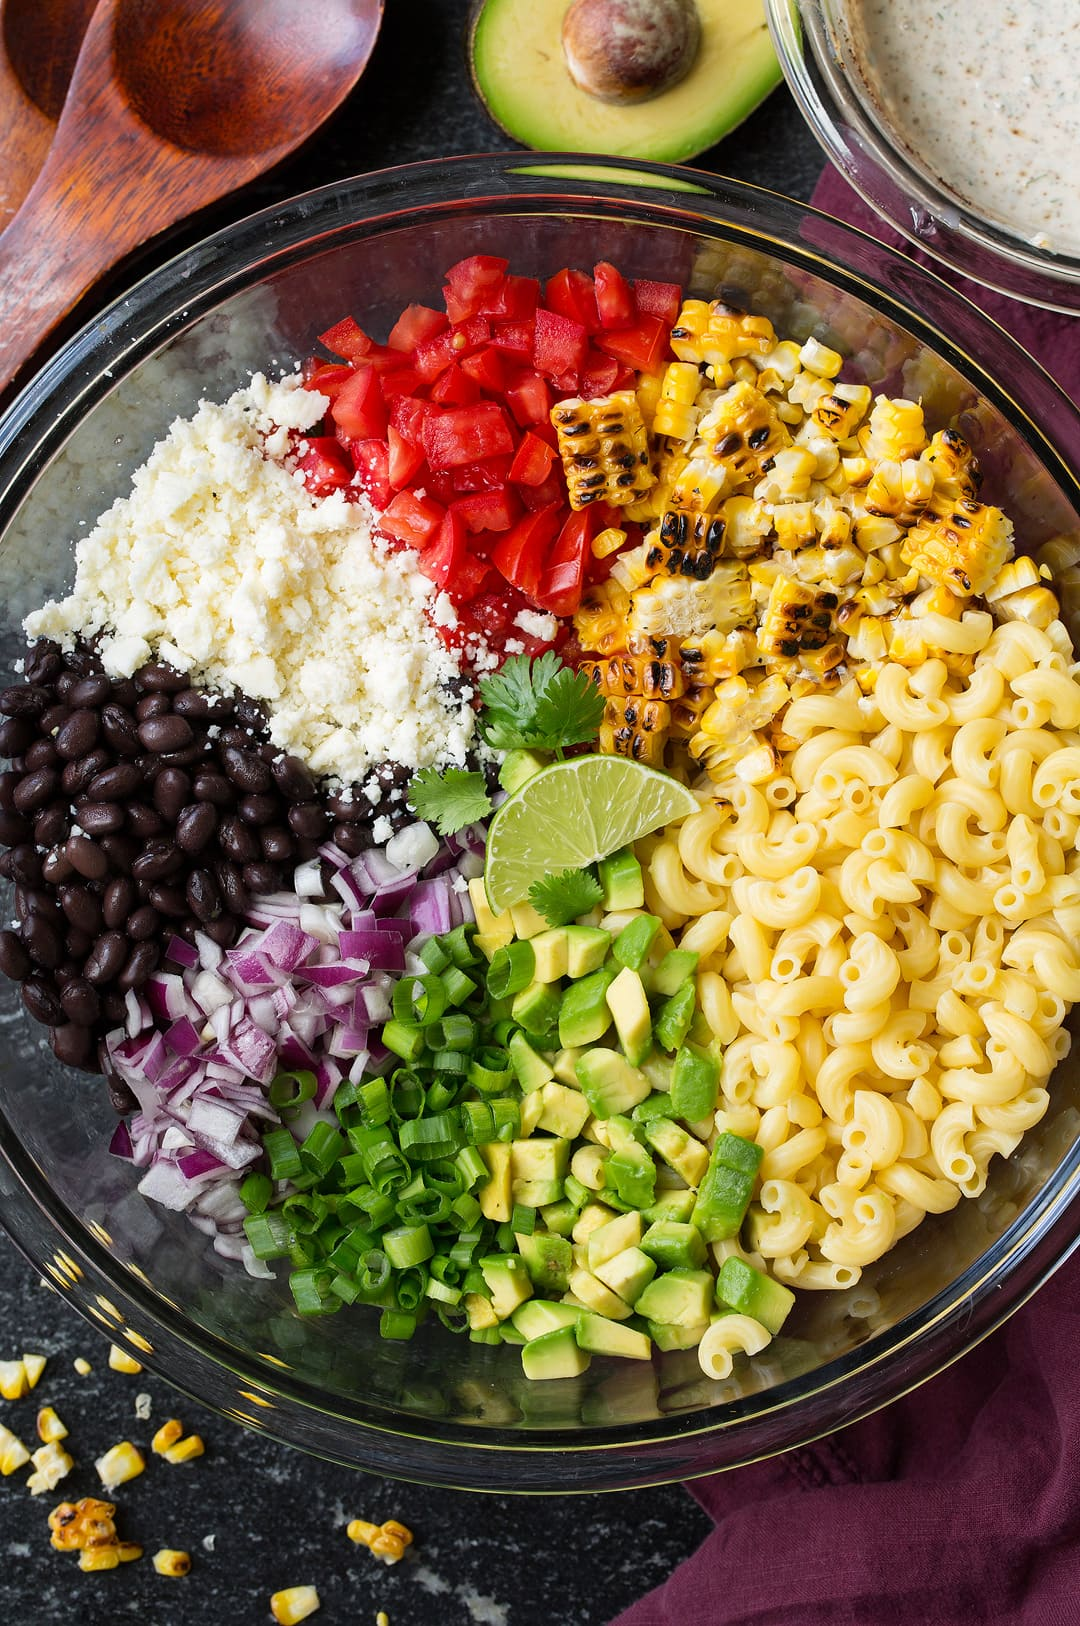 Mexican macaroni salad ingredients in a large glass bowl before tossing. Ingredients include macaroni, charred corn, black beans, avocado, tomato, green onion, red onion, and cotija.